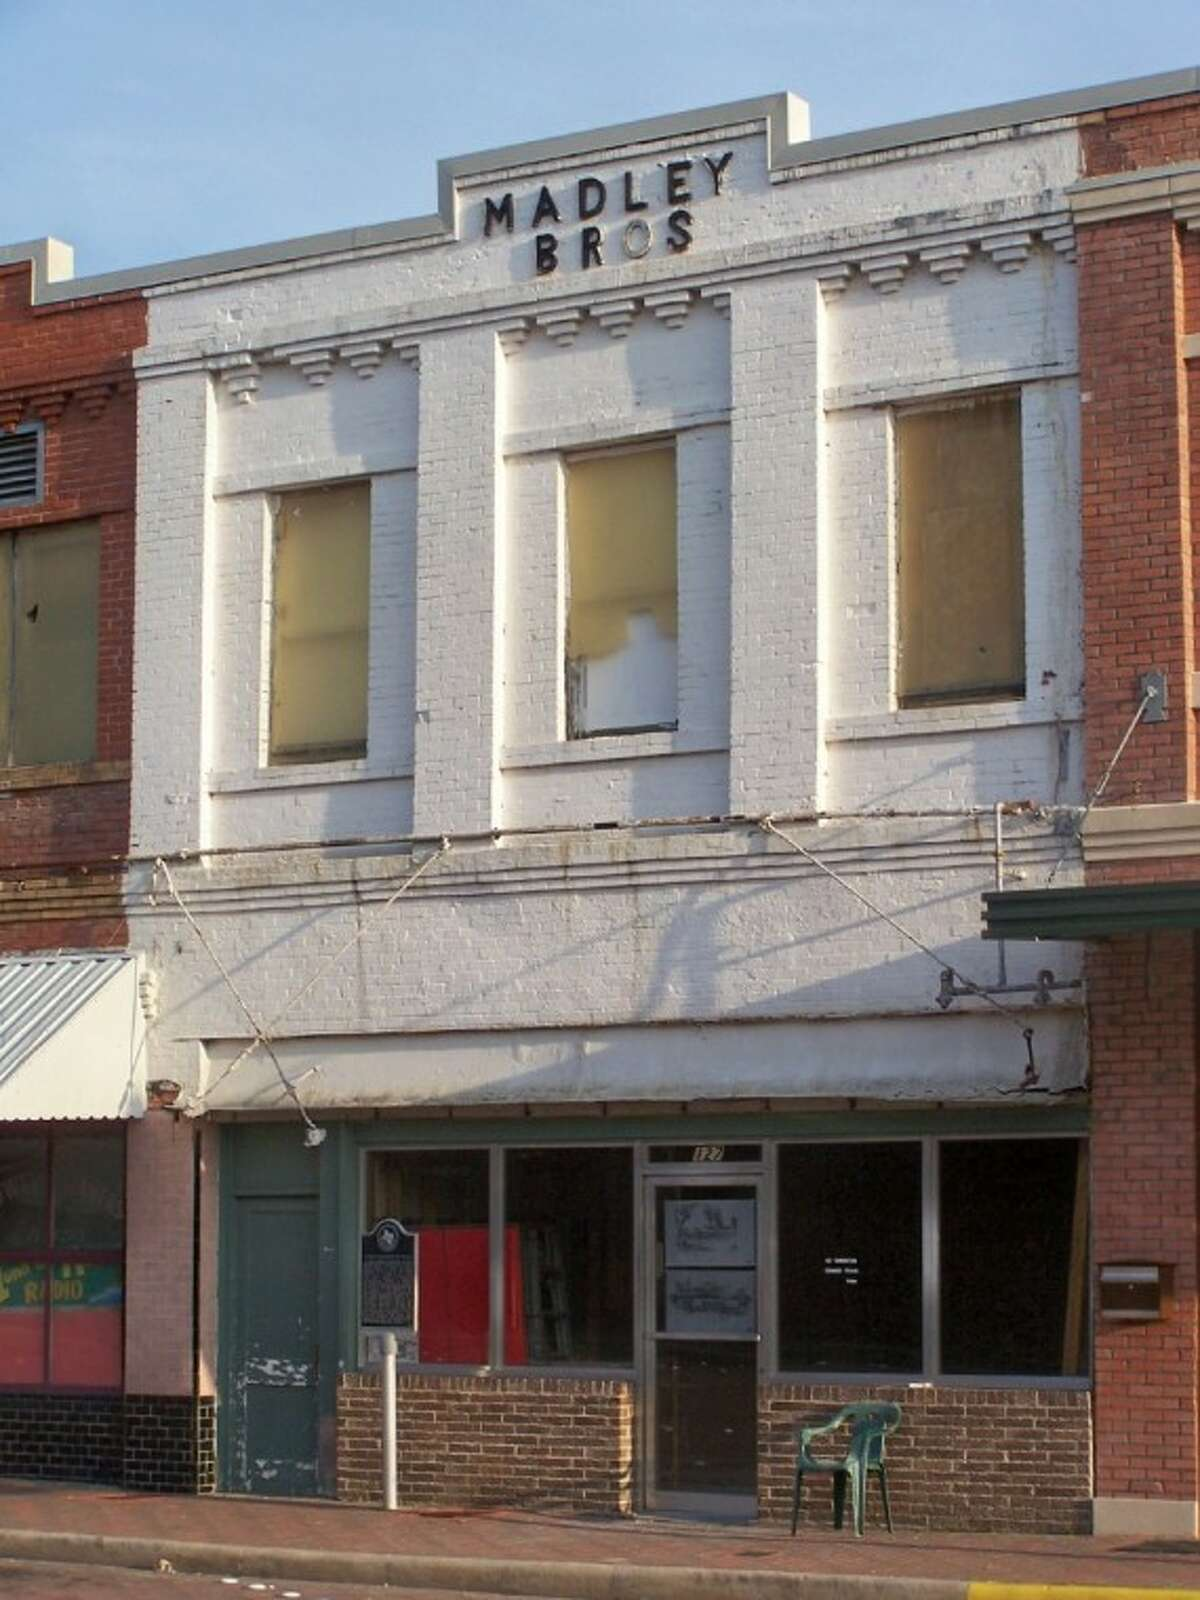 A photo of the Madeley Building prior to its renovation in 2010. The building housed many different businesses in its 100 years - including a meat market, dress shop, telephone exchange and others. Today it's the home of the Conroe Art League's Gallery at the Madeley Building. This photo was taken in 2006.